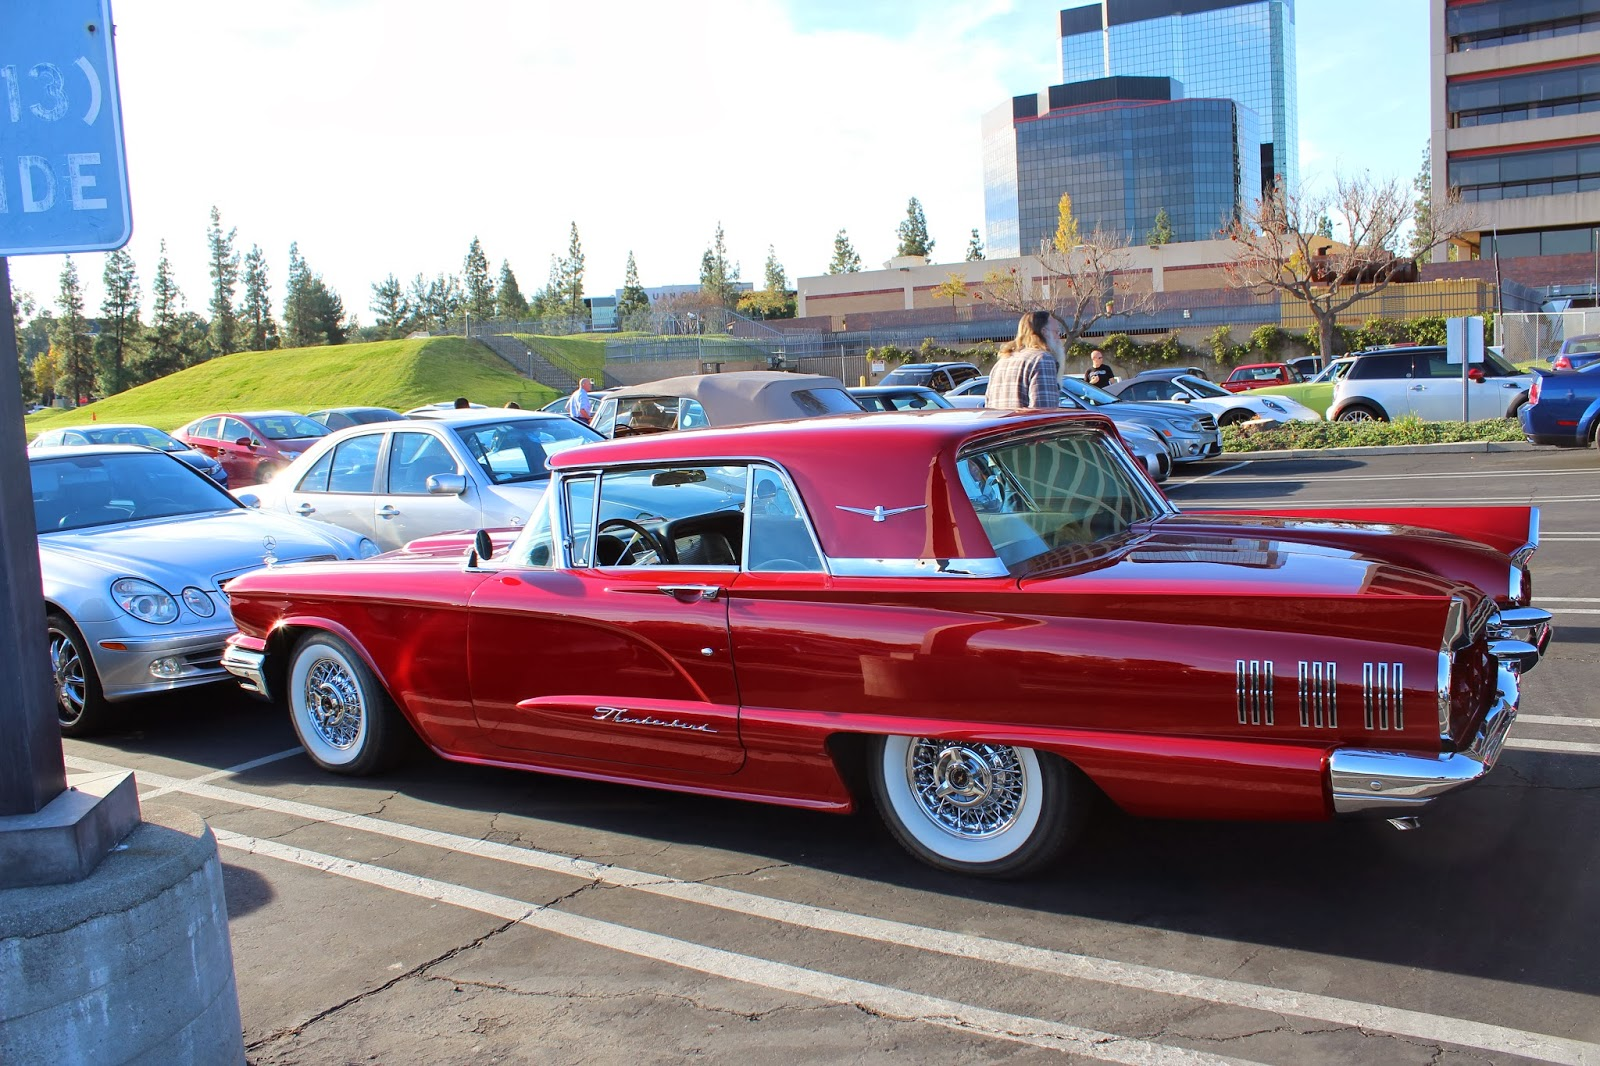 Covering Classic Cars : 2013 Motor 4 Toys Charity Car Show